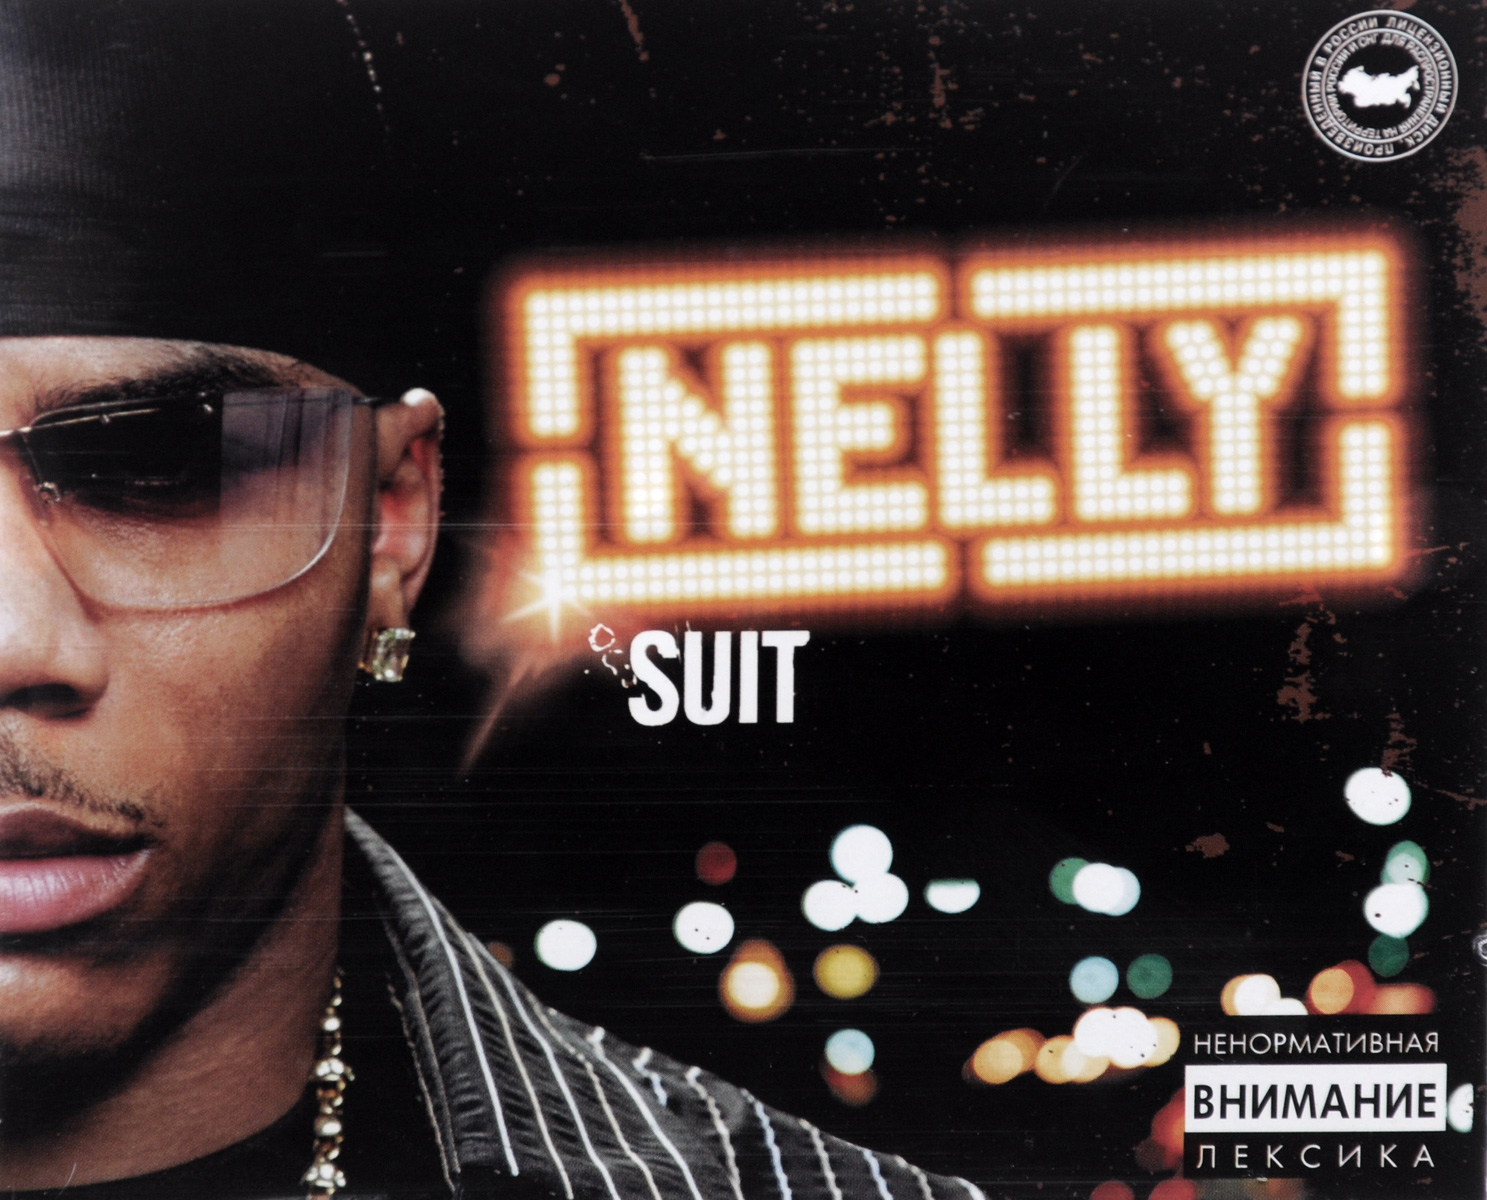 Nelly Nelly. Suit светильник артпром nelly d white nelly d p1 01